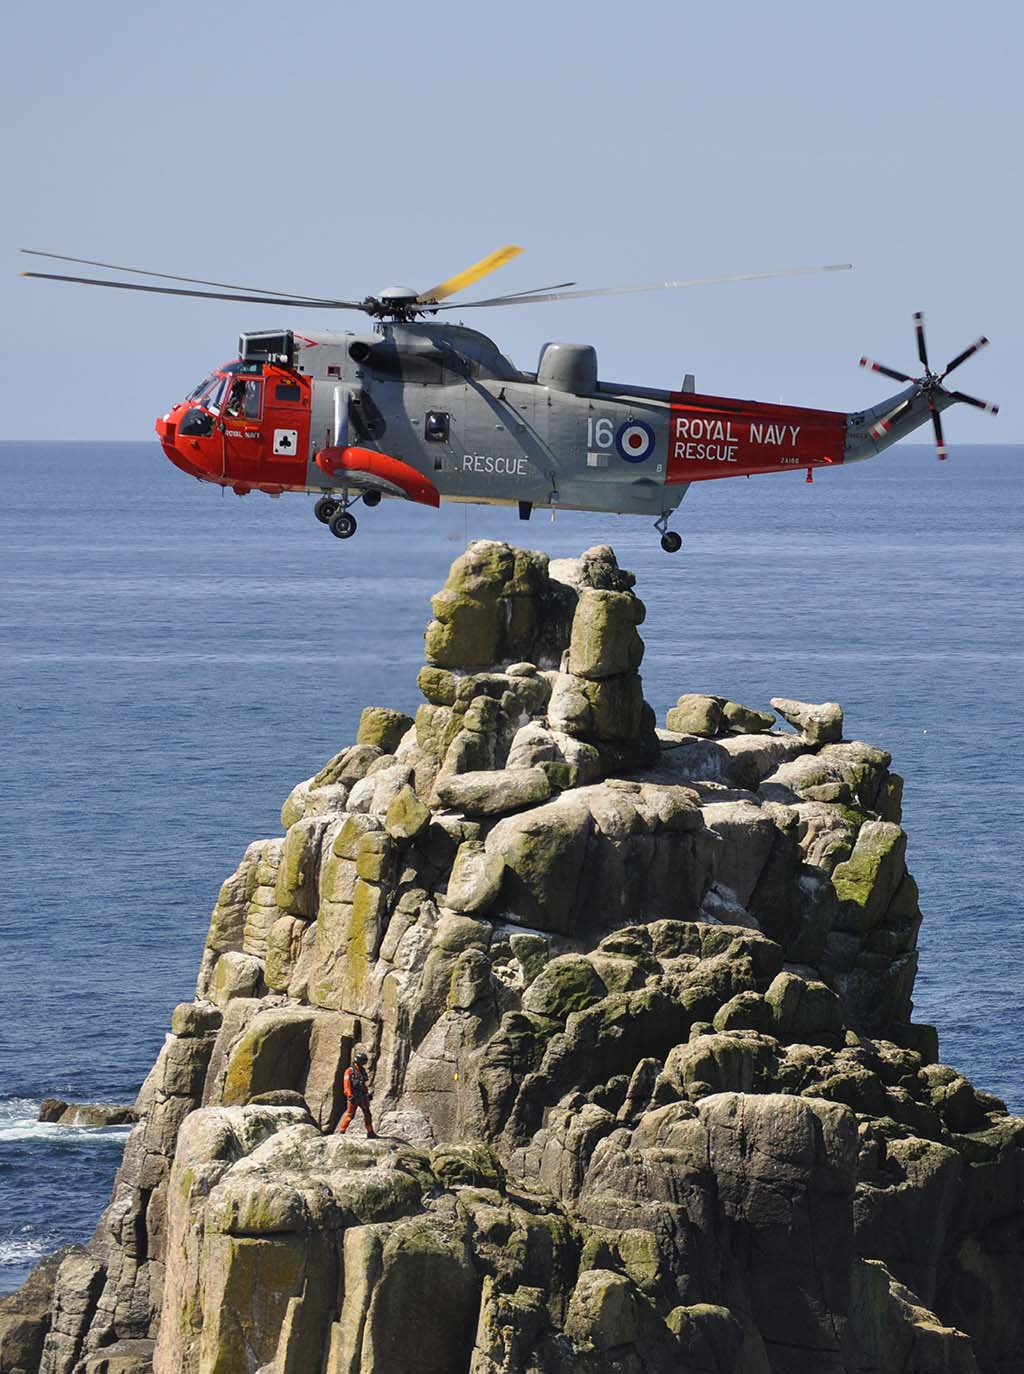 Royal Navy helicopter hovering close to land